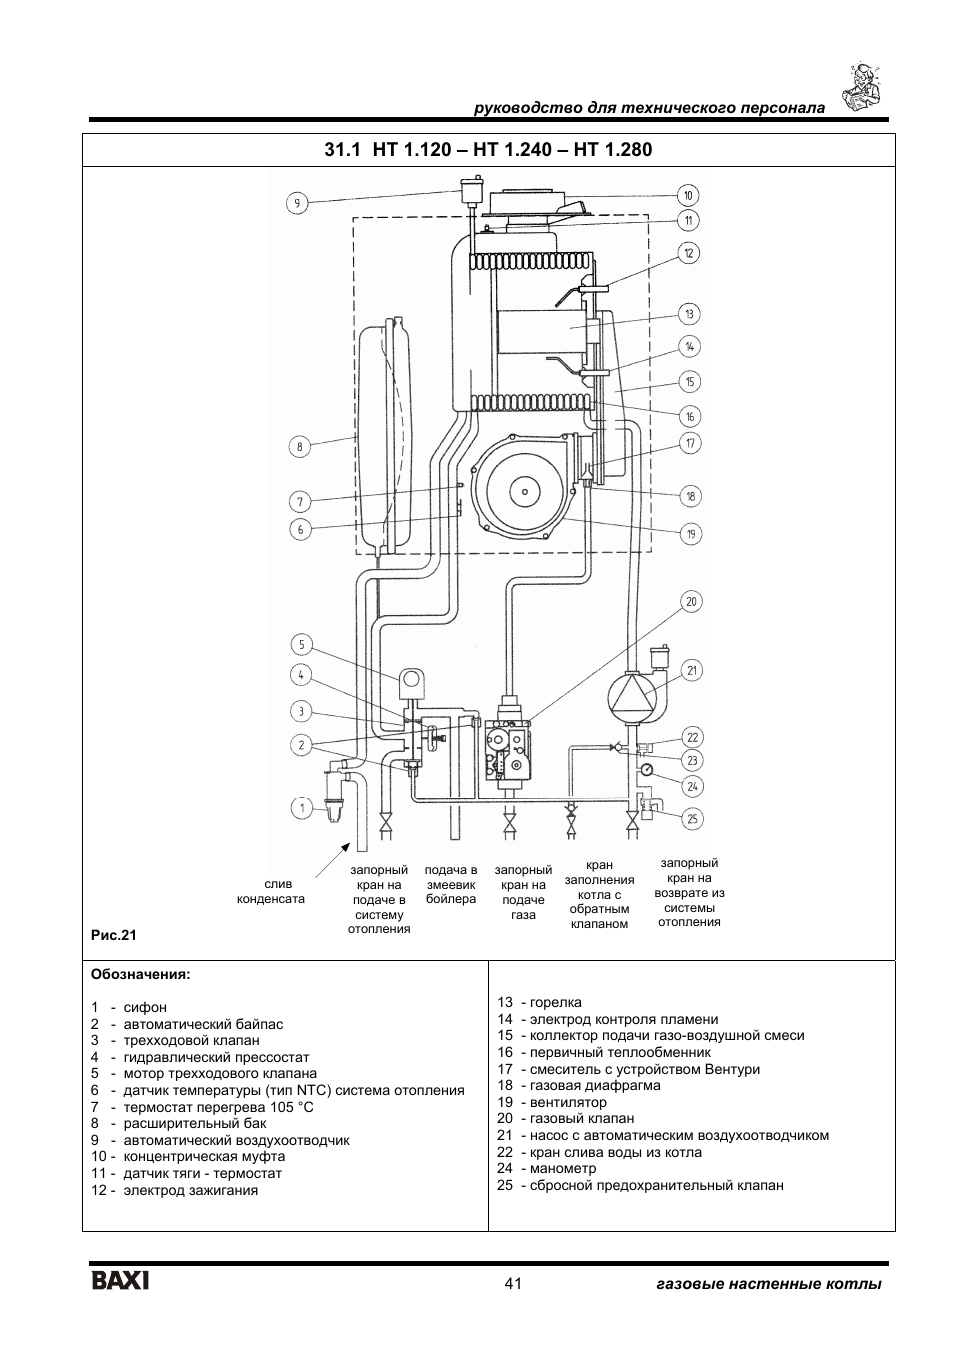 41 for Baxi eco 3 manuale